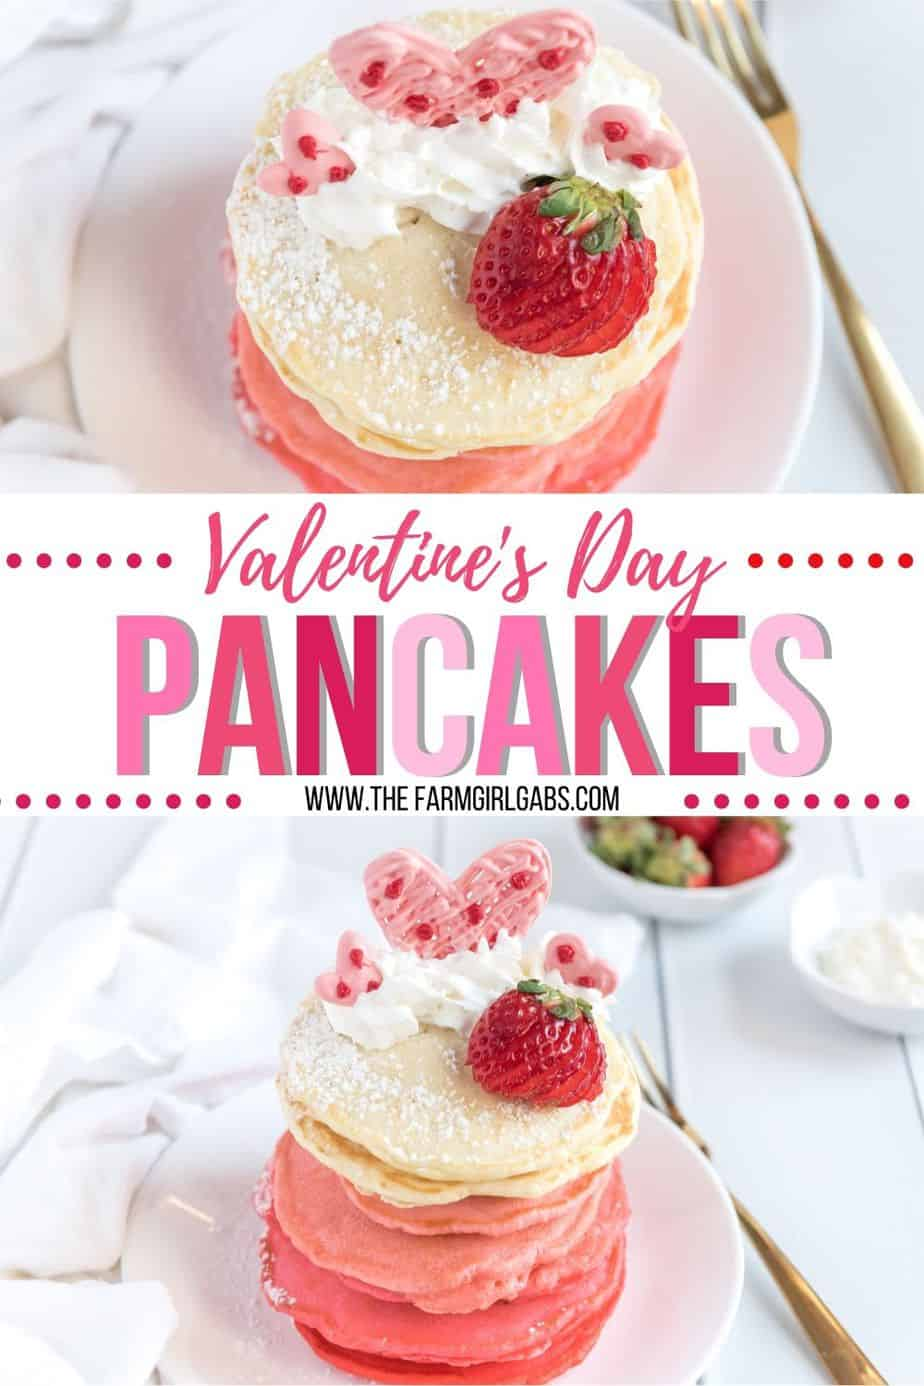 These Pink Ombre Pancakes are the perfect homemade Valentine's Day Pancake Recipe. Your family will love these light and fluffy pancakes. Share some love and make easy pancake recipe can be served all year long. #valentinesdaypancakes #ombrepancakes